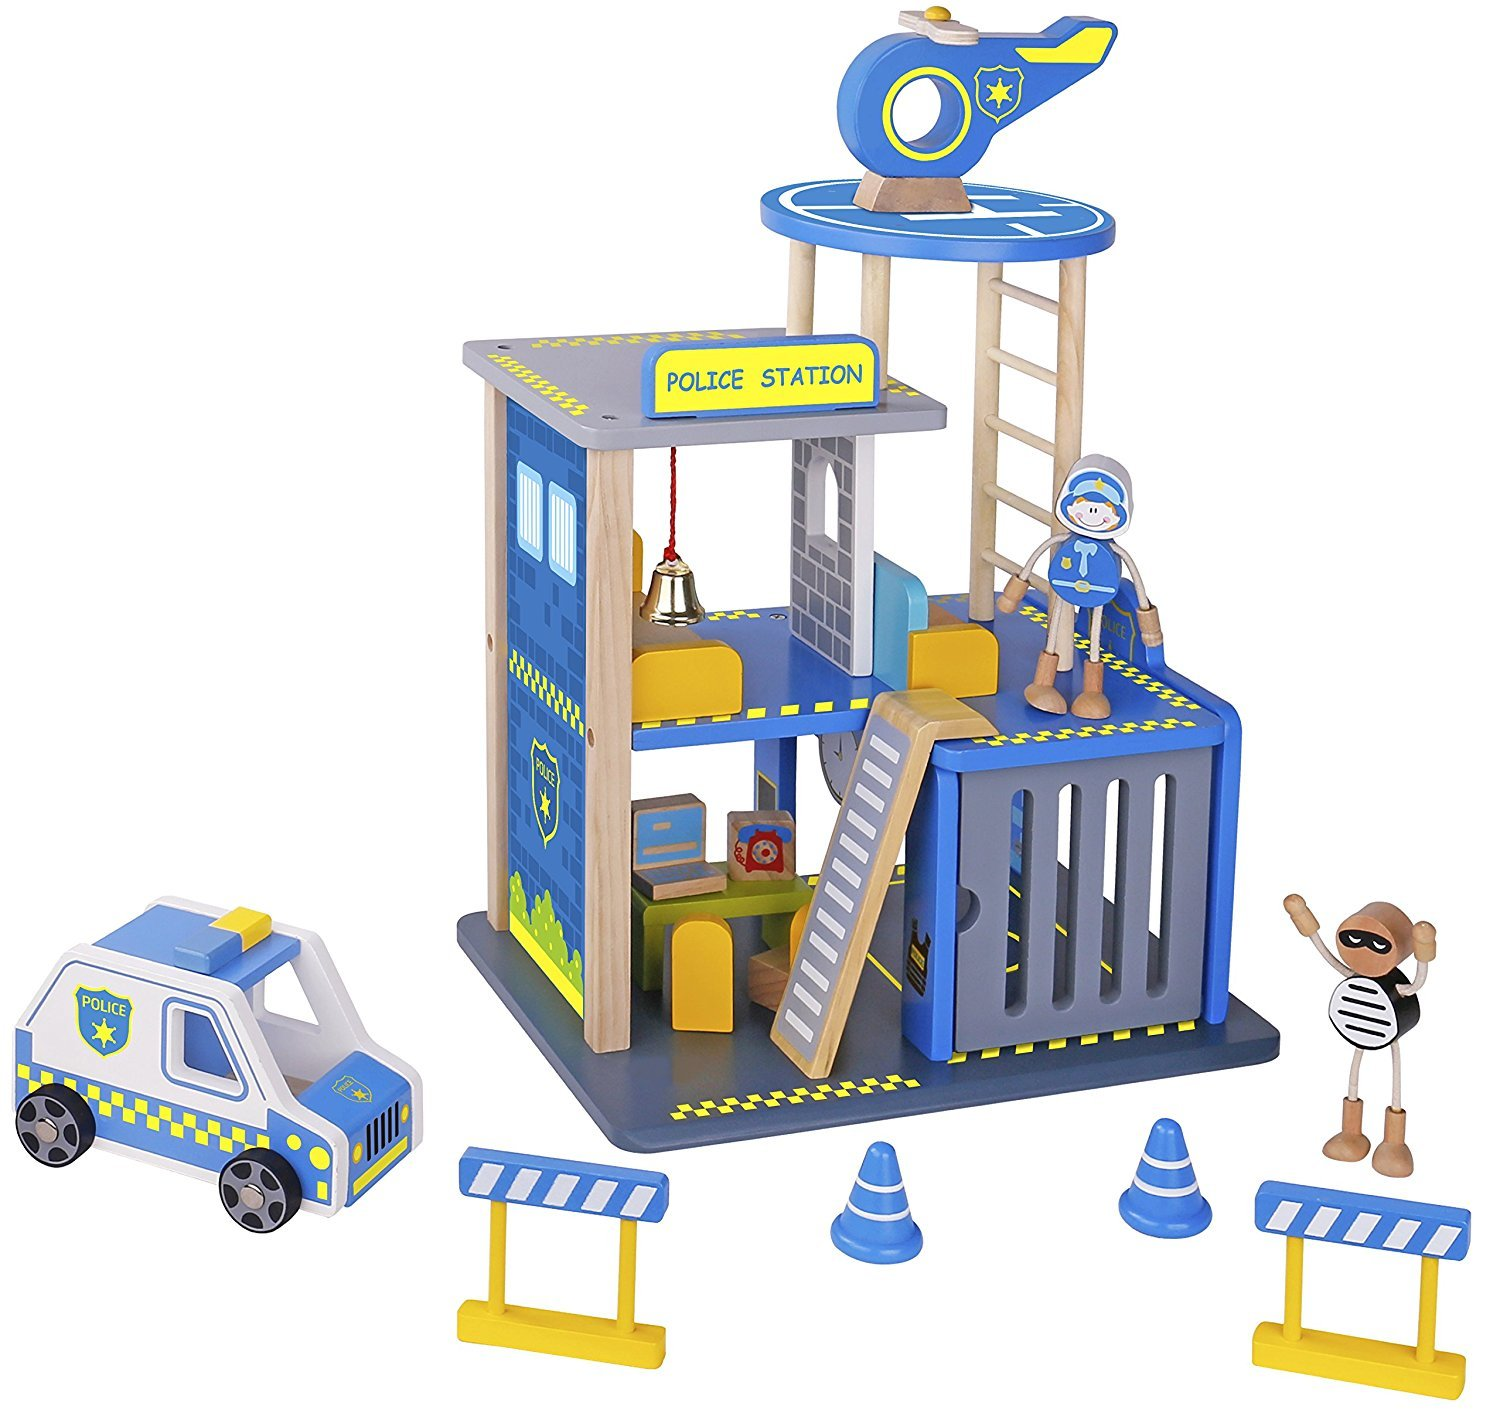 pidoko kids police station playset everyday heroes wooden toys play set with accessories car. Black Bedroom Furniture Sets. Home Design Ideas